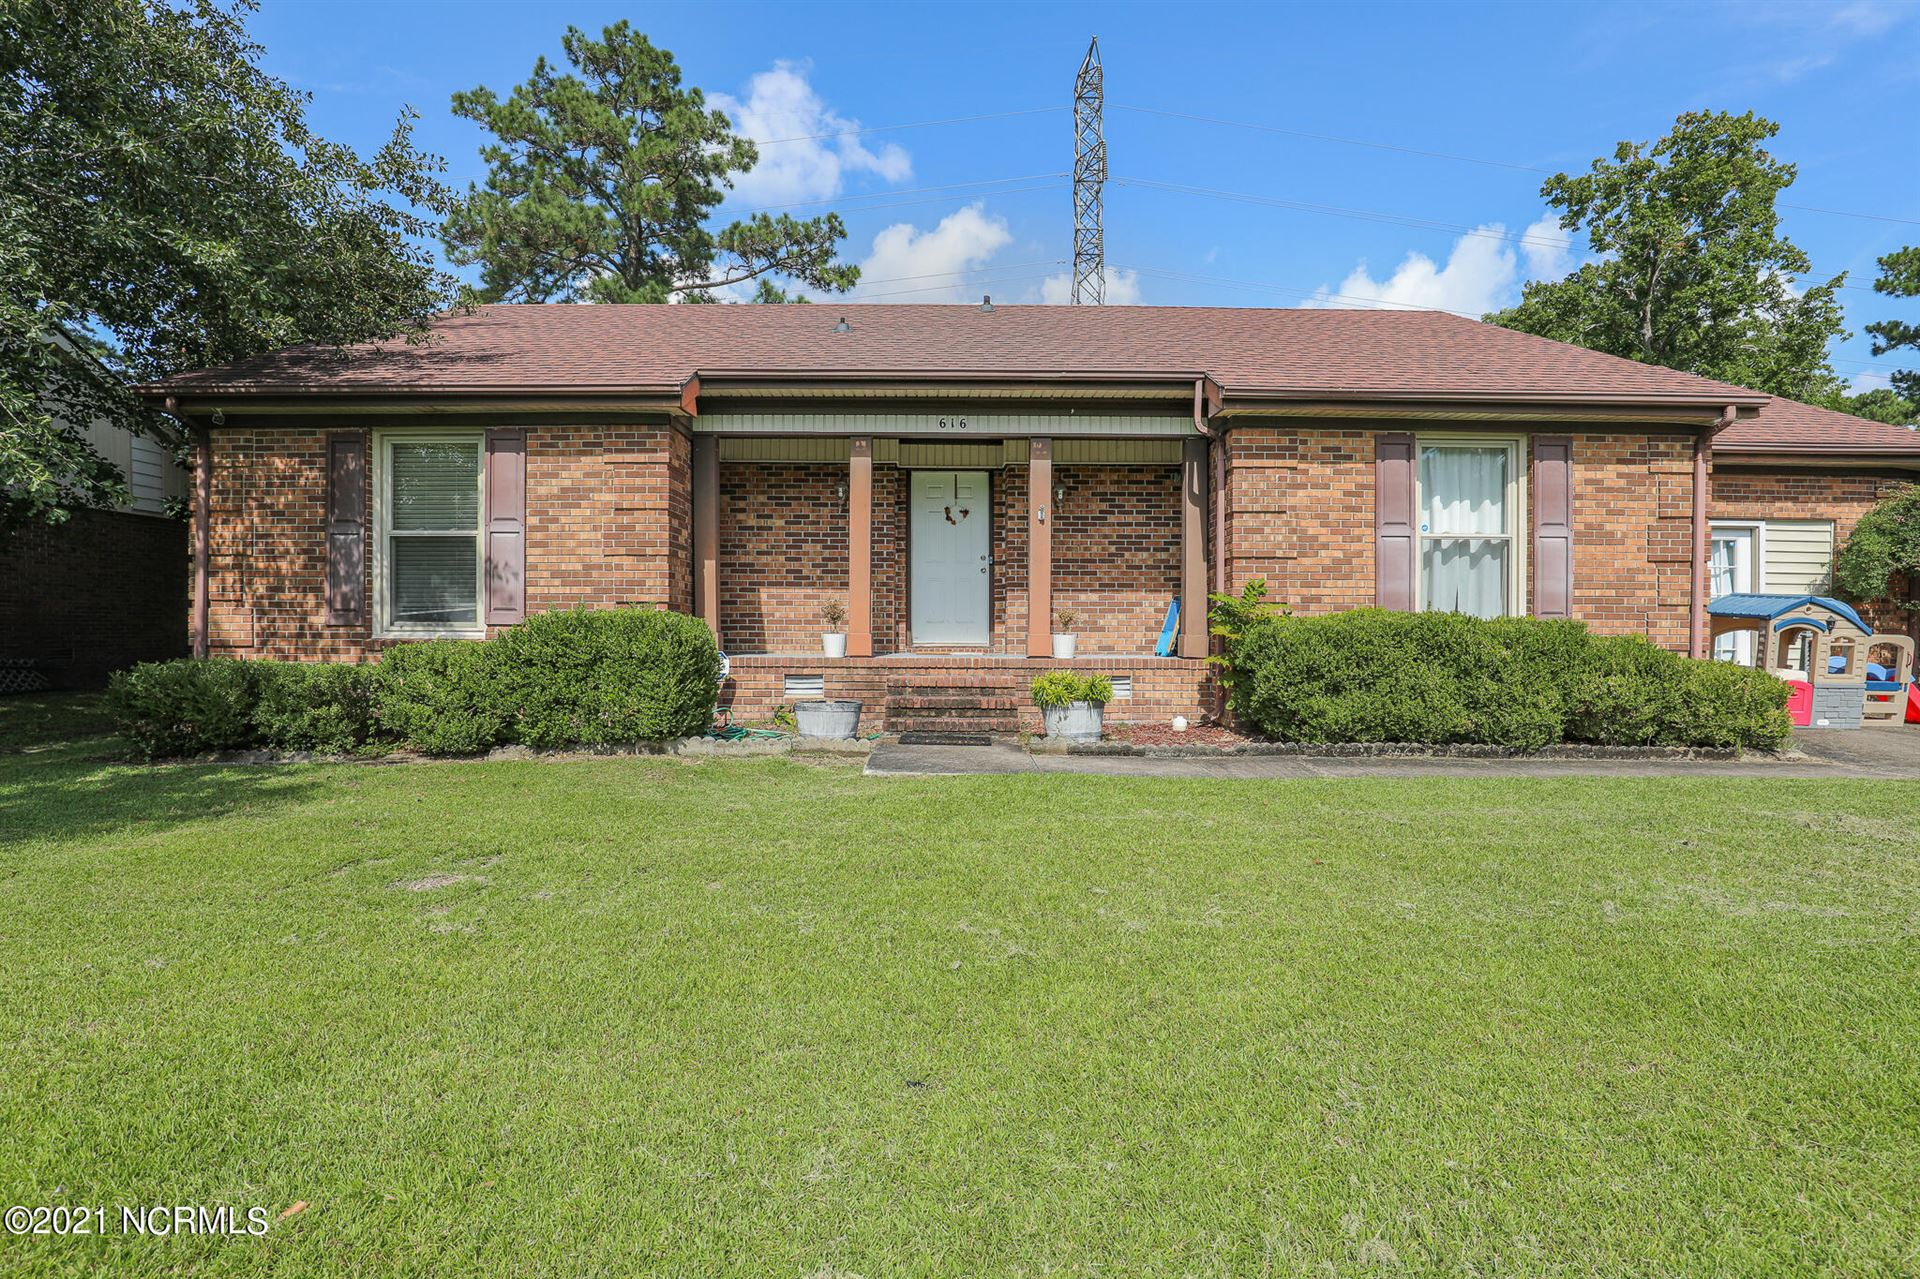 Photo of 616 Winchester Road, Jacksonville, NC 28546 (MLS # 100291338)